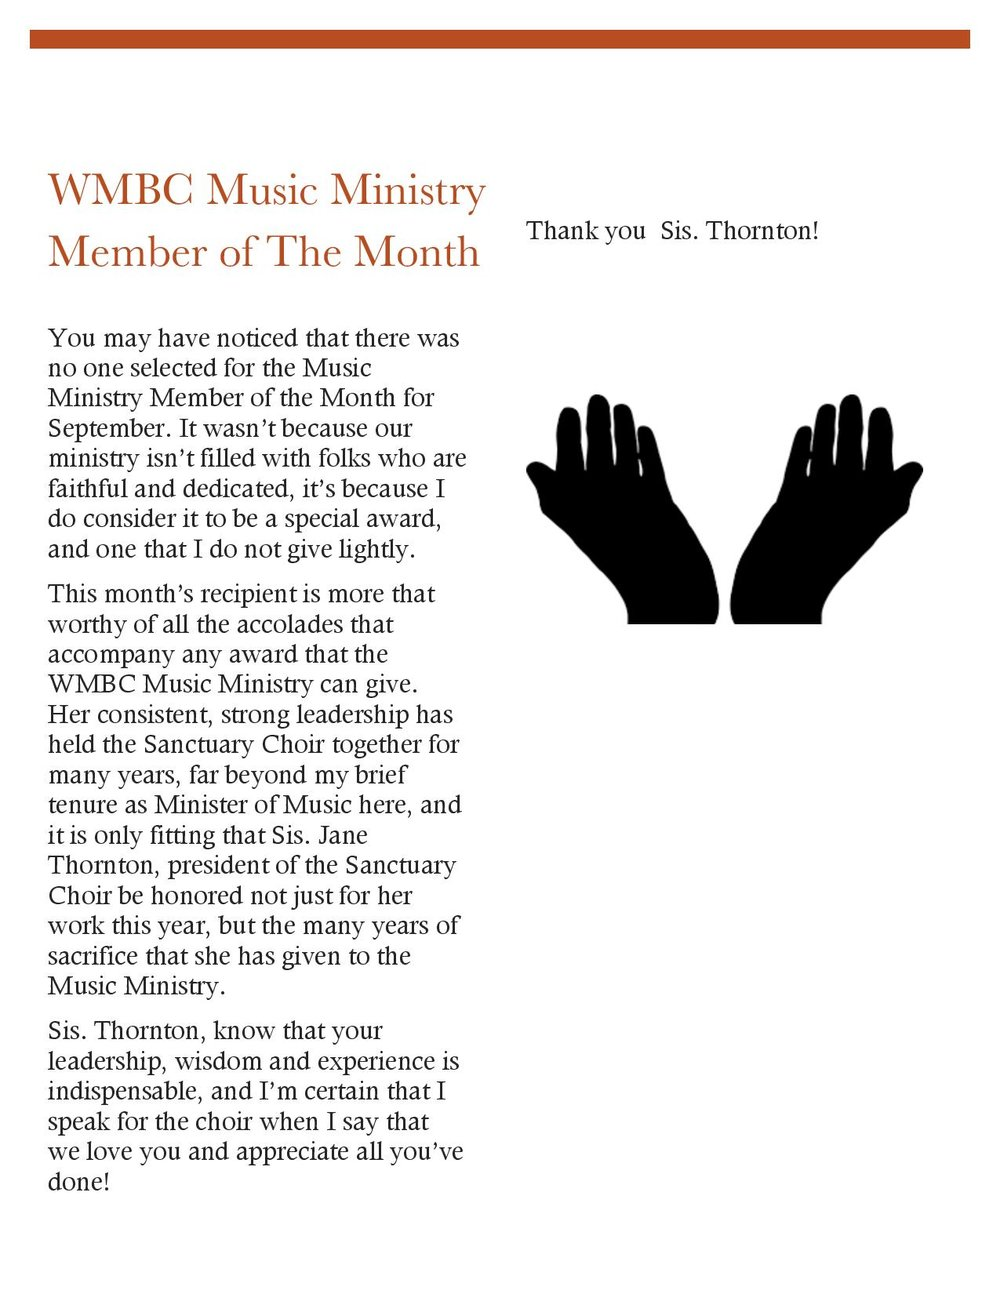 WMBC Music Ministry Newsletter October 2017  (Autosaved)-page-004.jpg